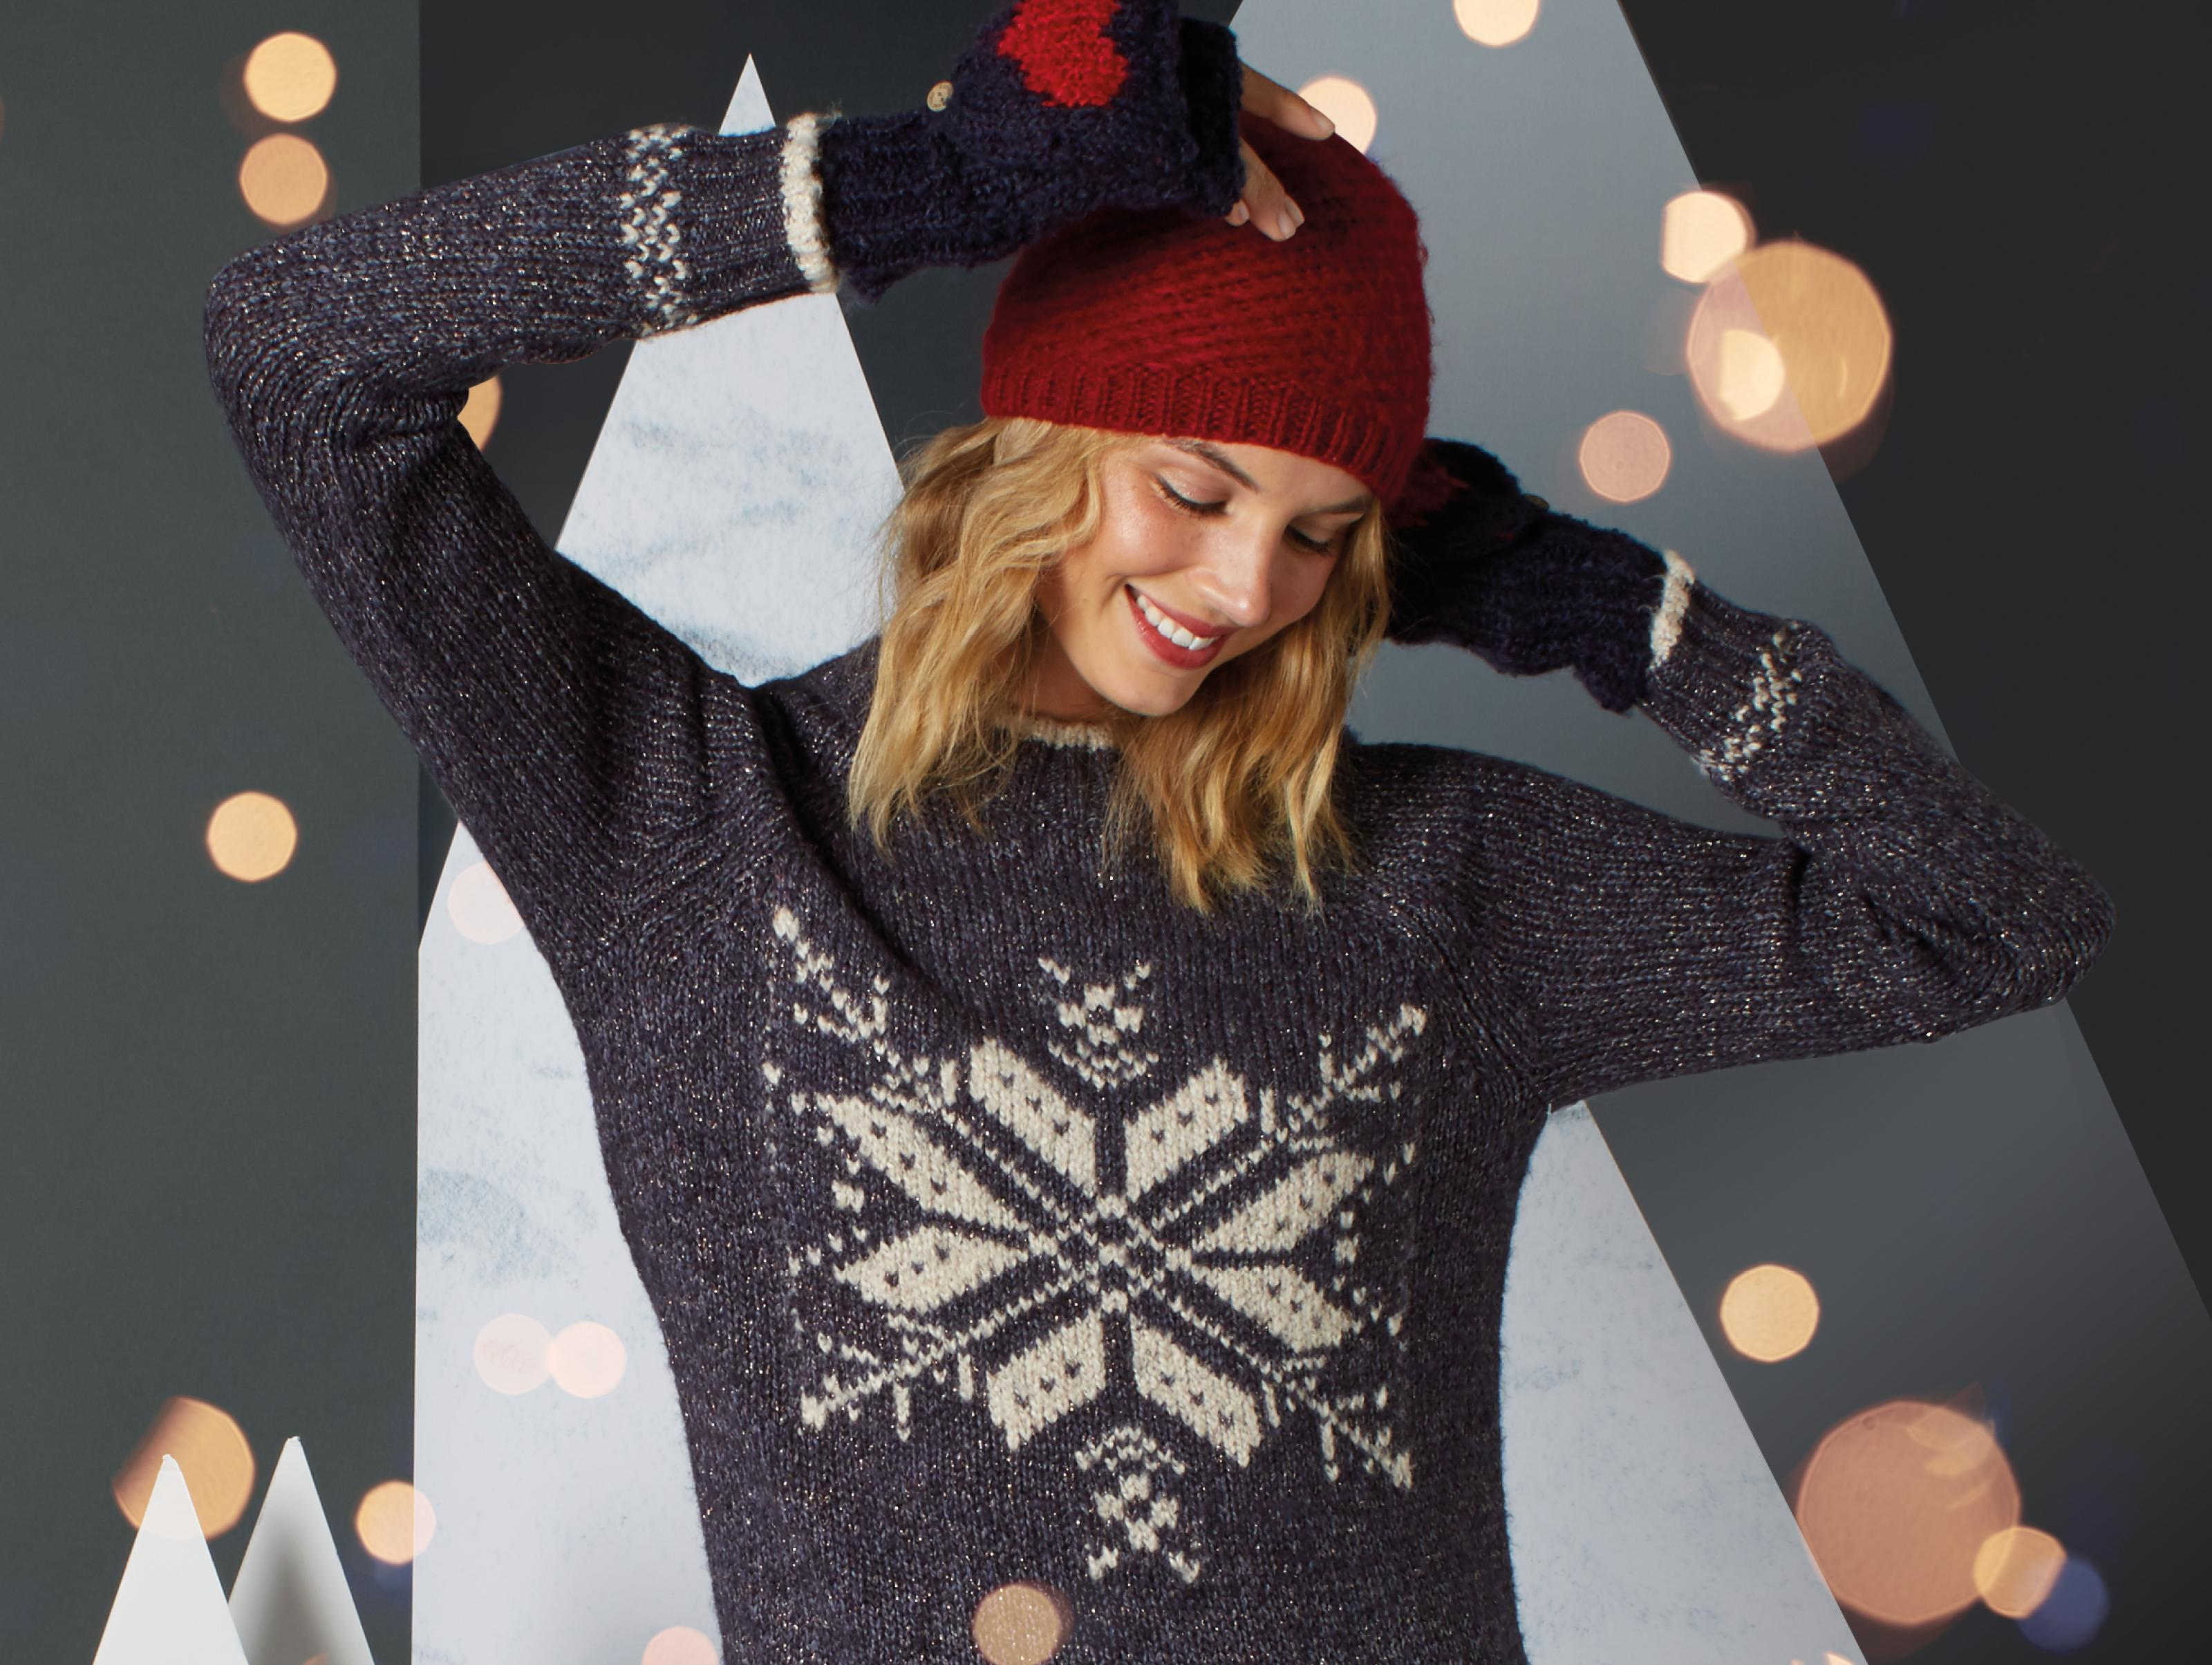 Layer up with women's jumpers and cardigans, from luxury cashmere to fun Christmas jumpers.